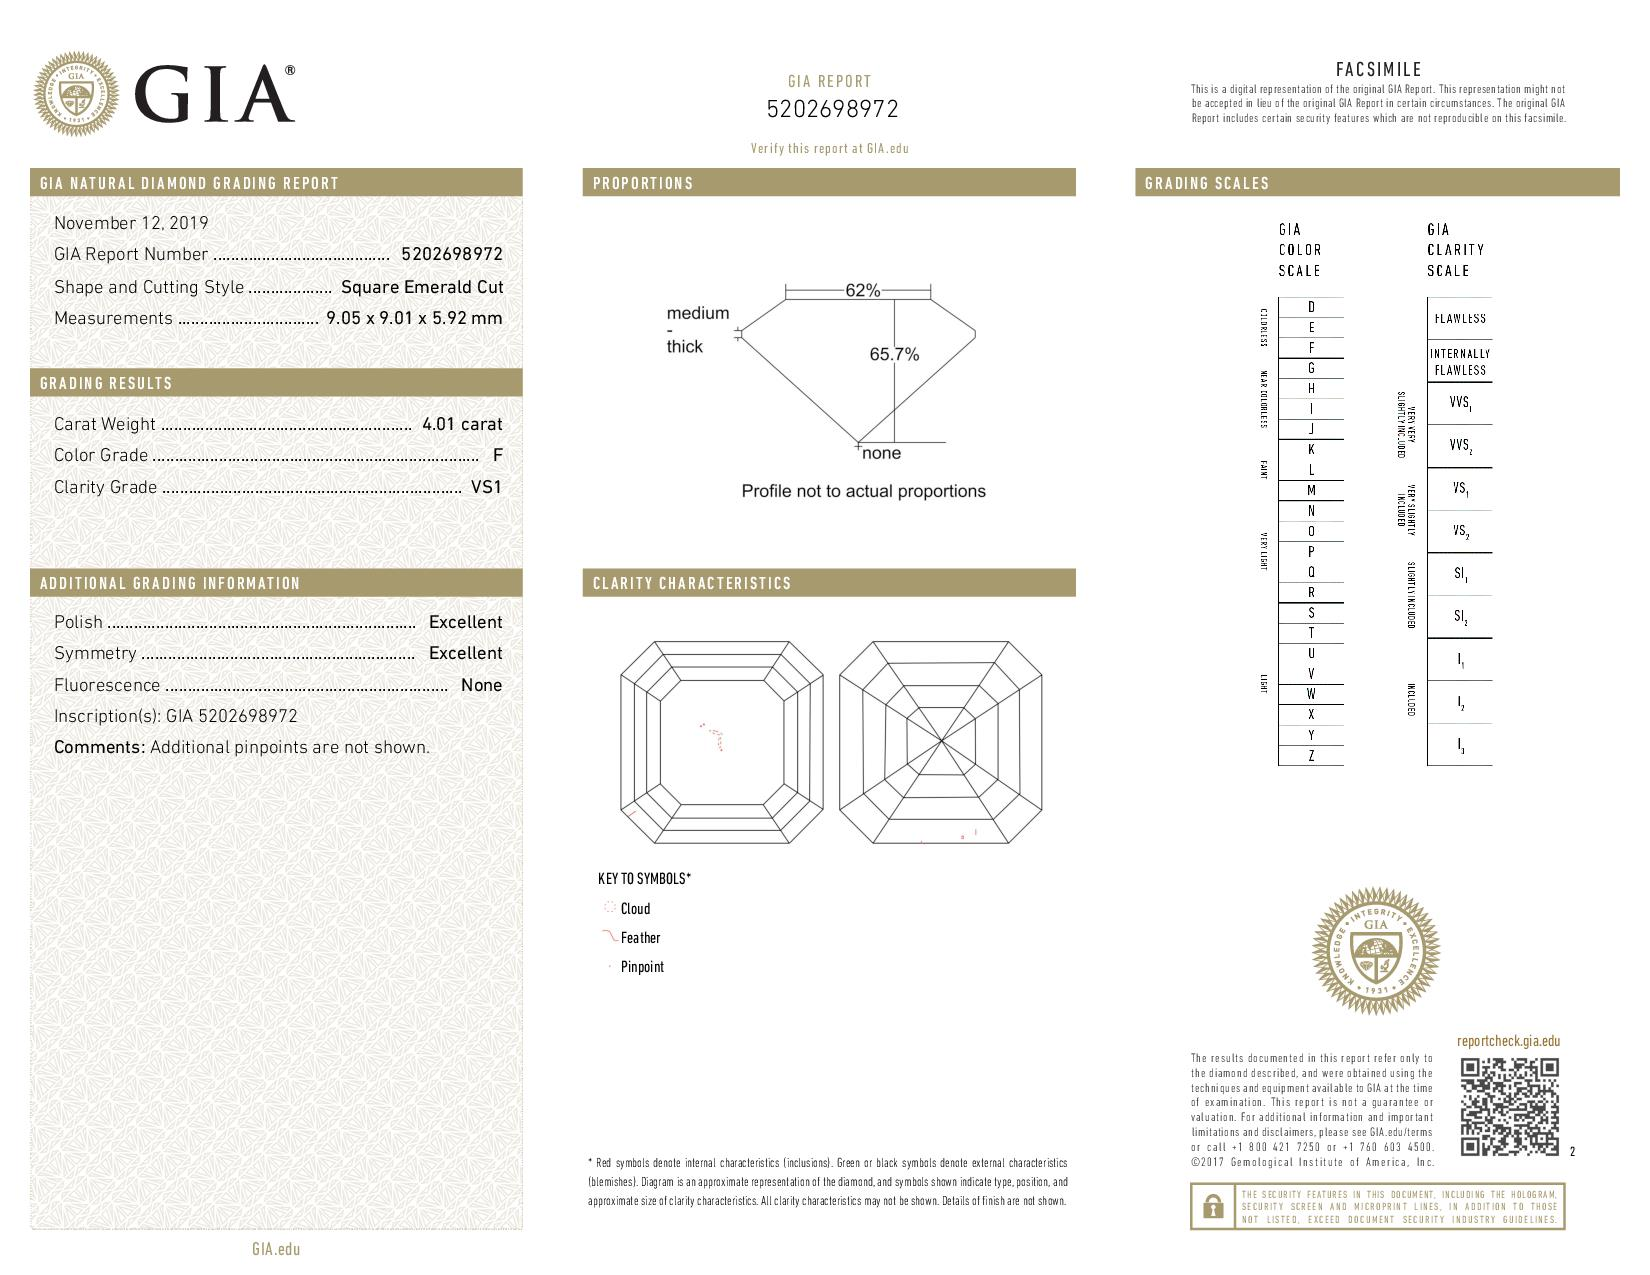 This is a 4.01 carat asscher shape, F color, VS1 clarity natural diamond accompanied by a GIA grading report.